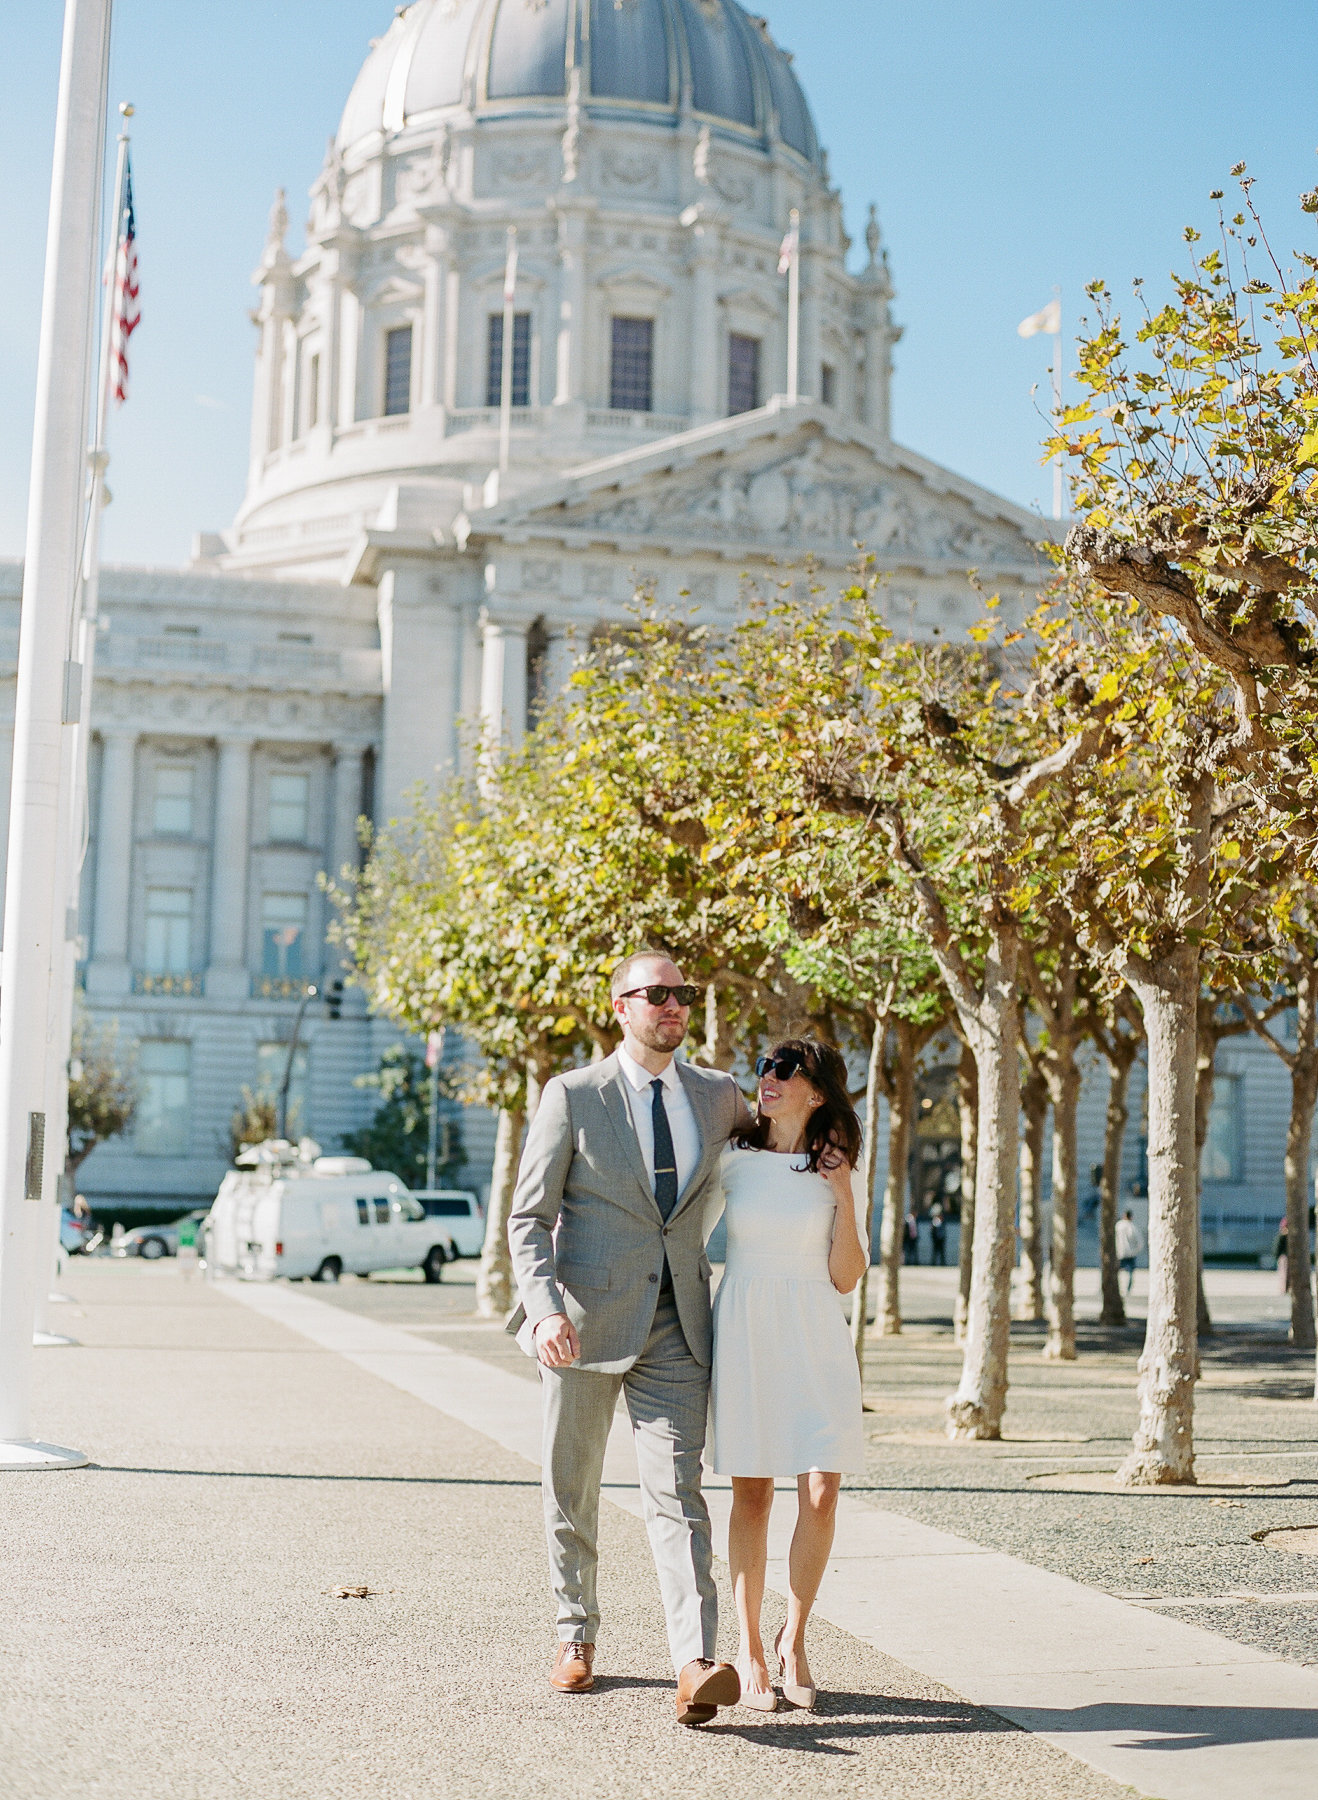 12-000035030001-san-francisco-city-hall-wedding-michaela-joy-photography